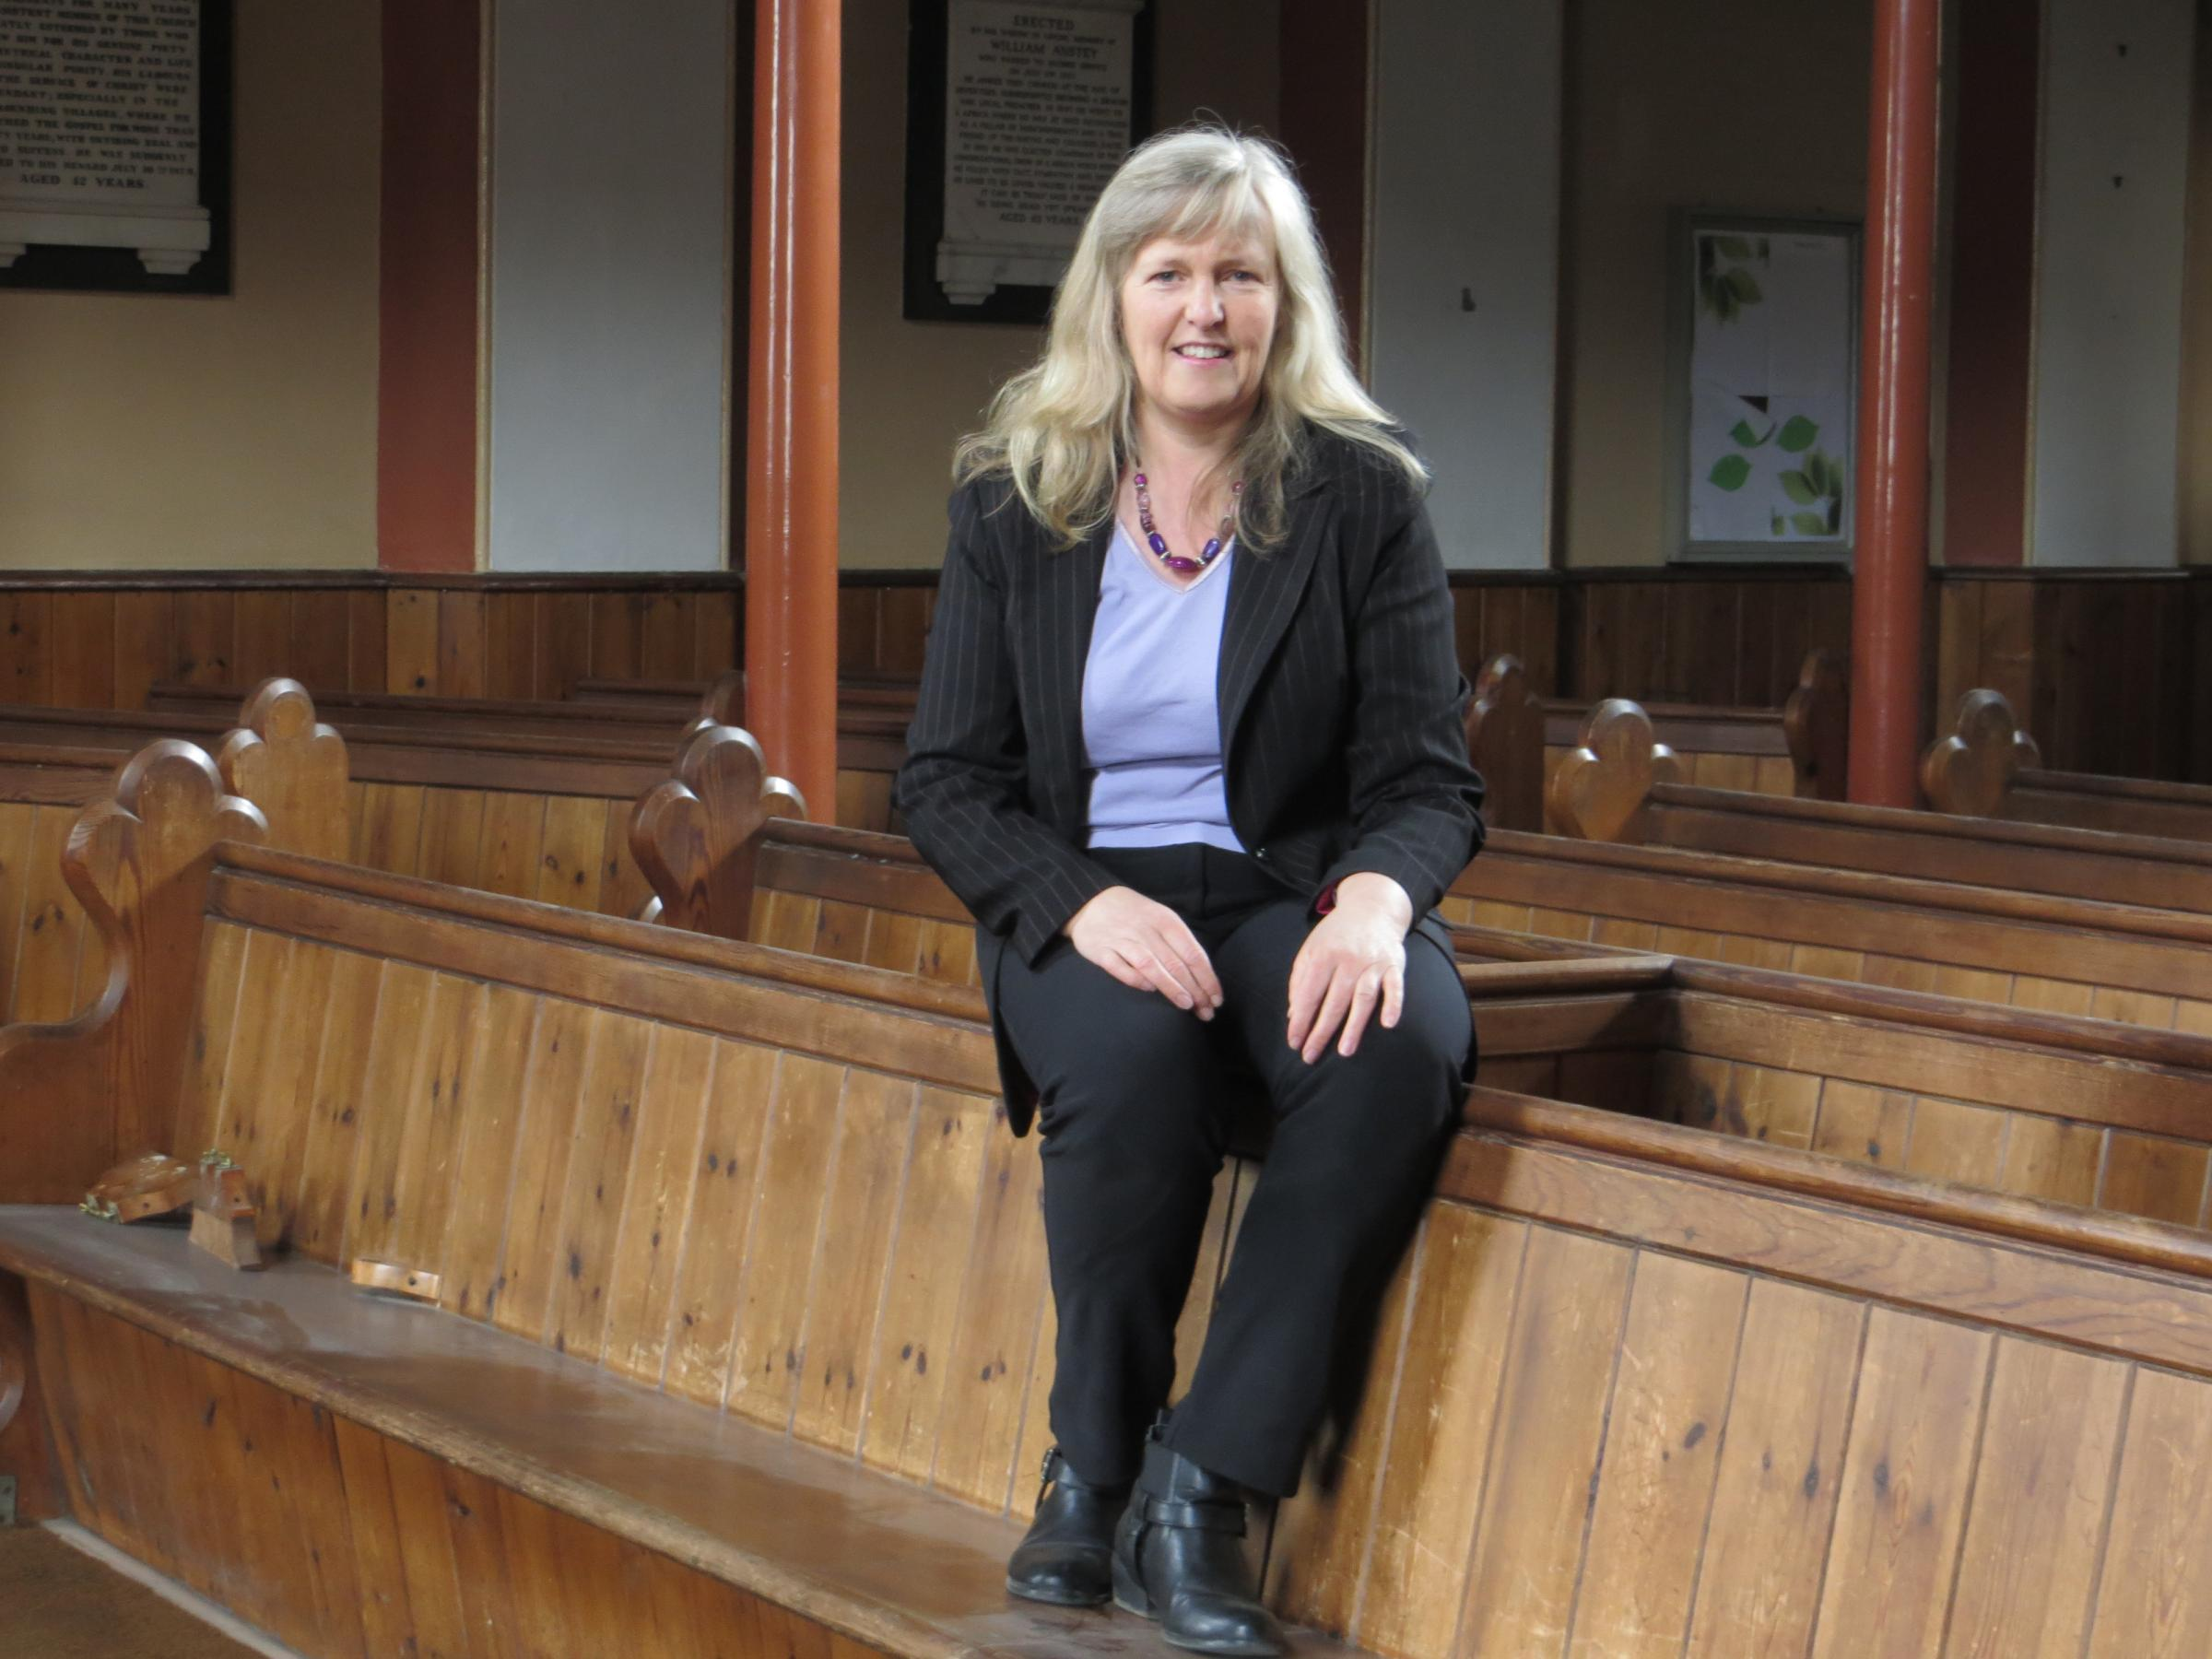 New church owner welcomes community